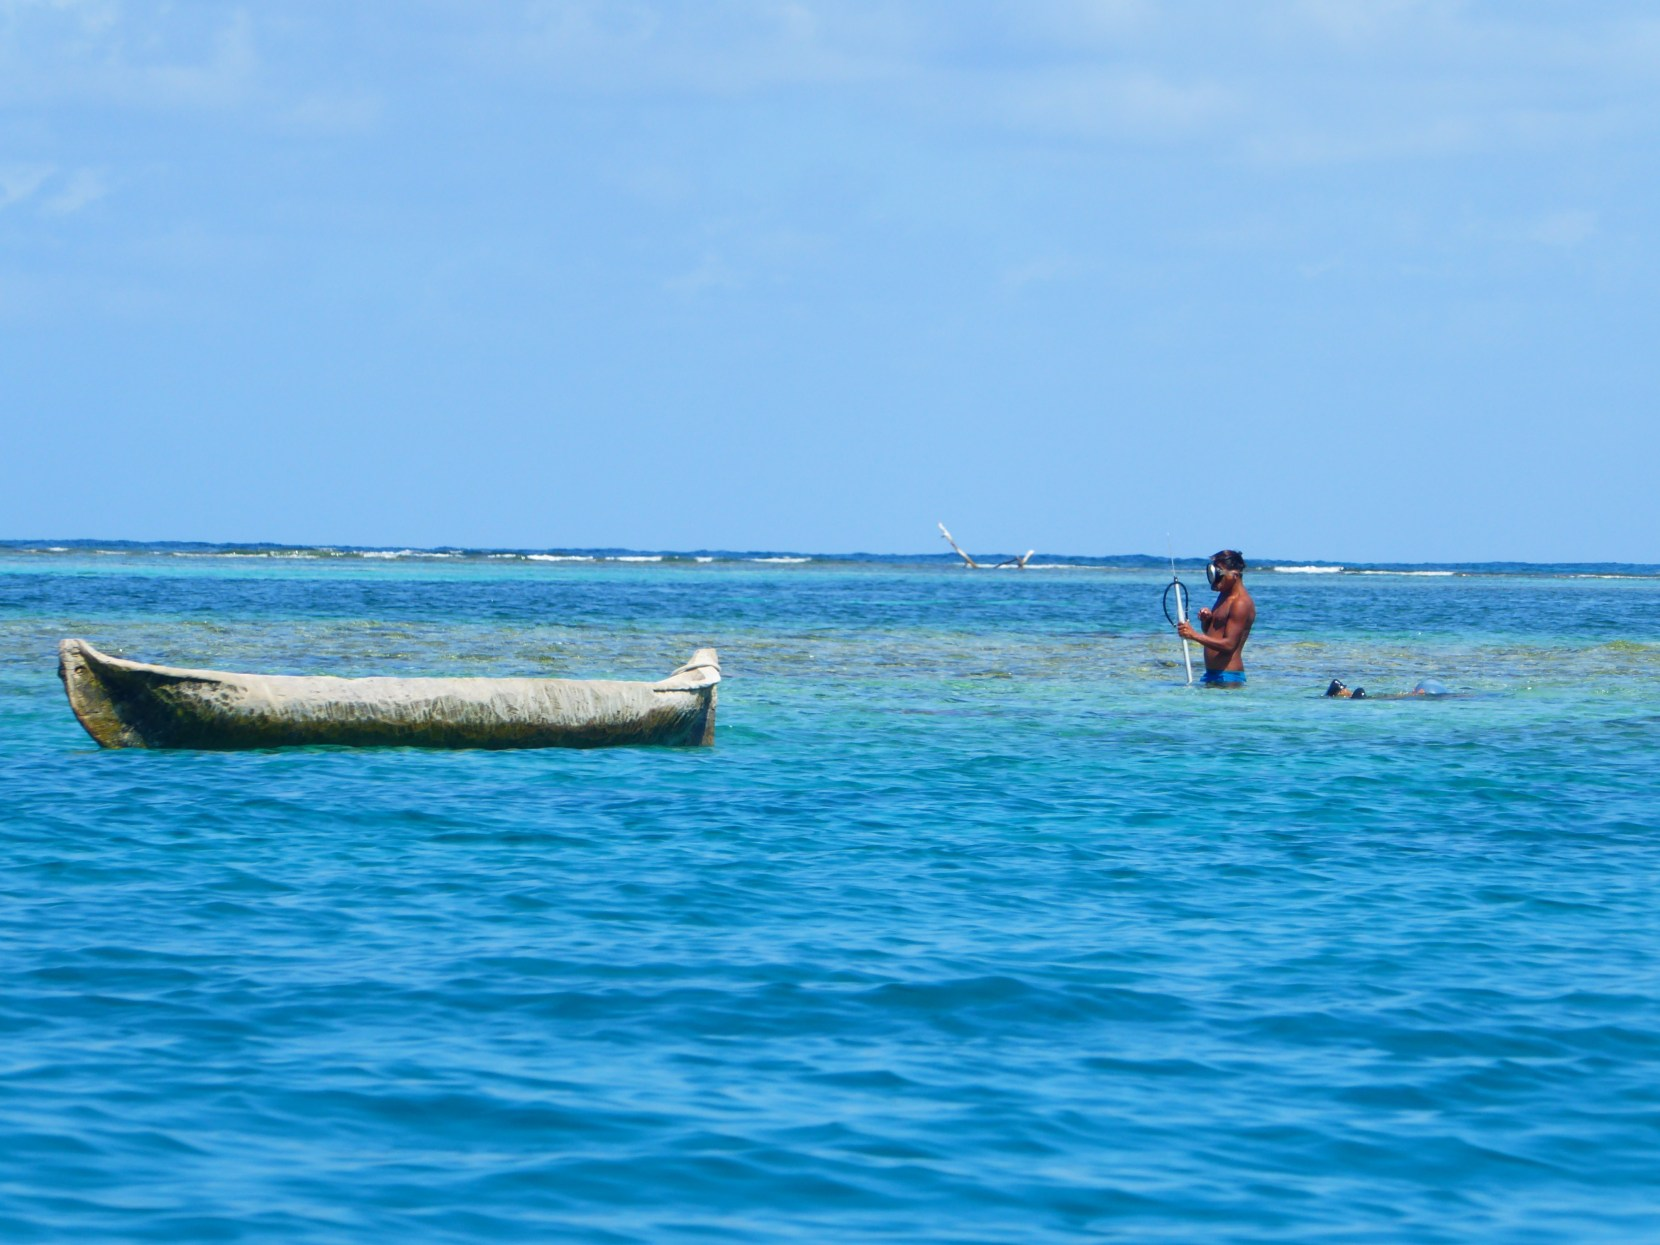 spear fishing san blas islands island panama guna yala kuna indigenous